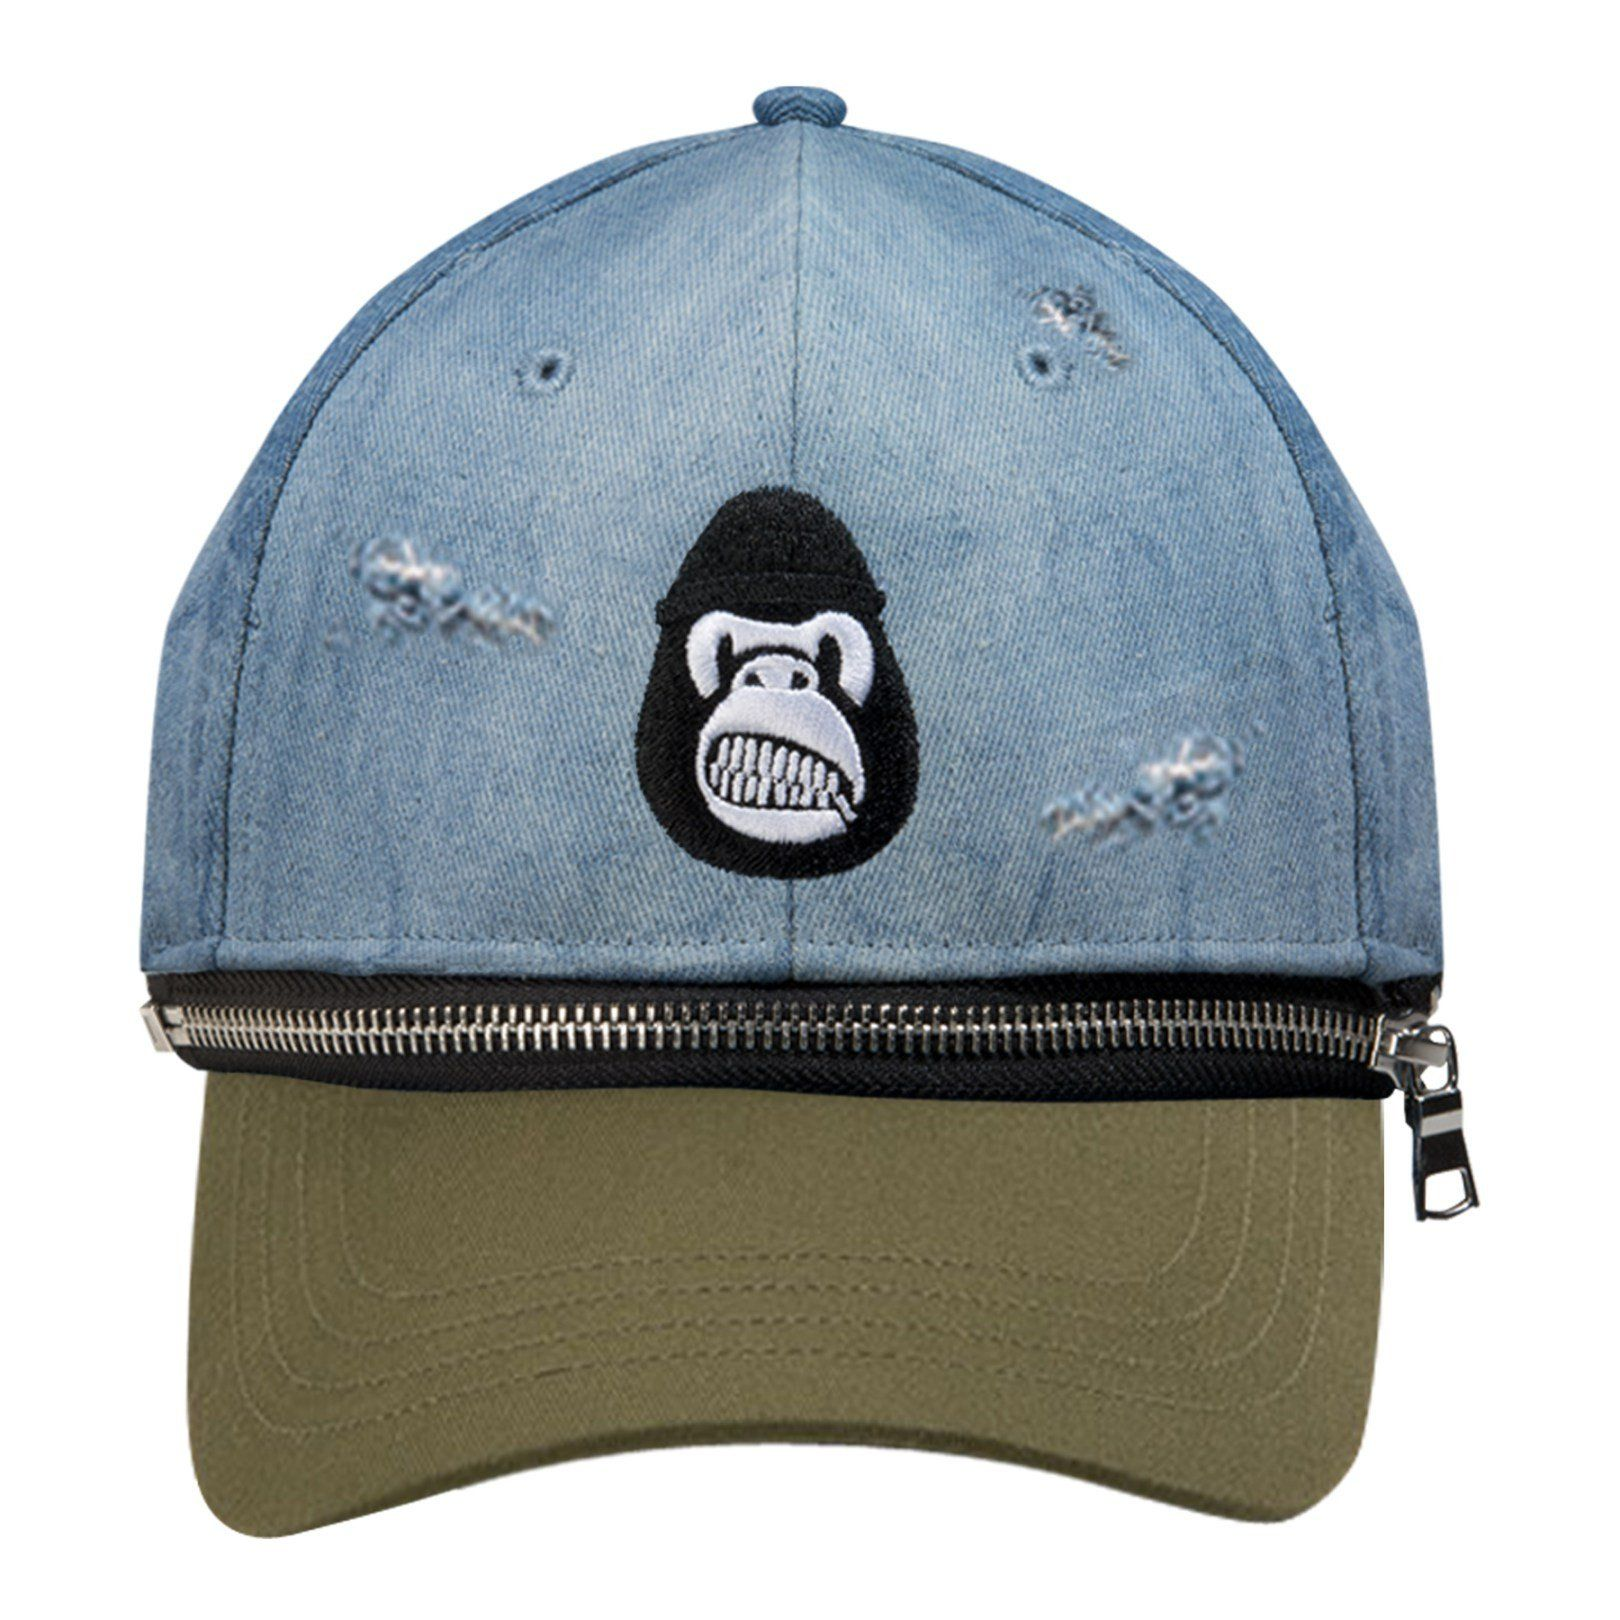 Jean Ripped Hat Edition #1 (COMES WITH SECOND MYSTERY BRIM)